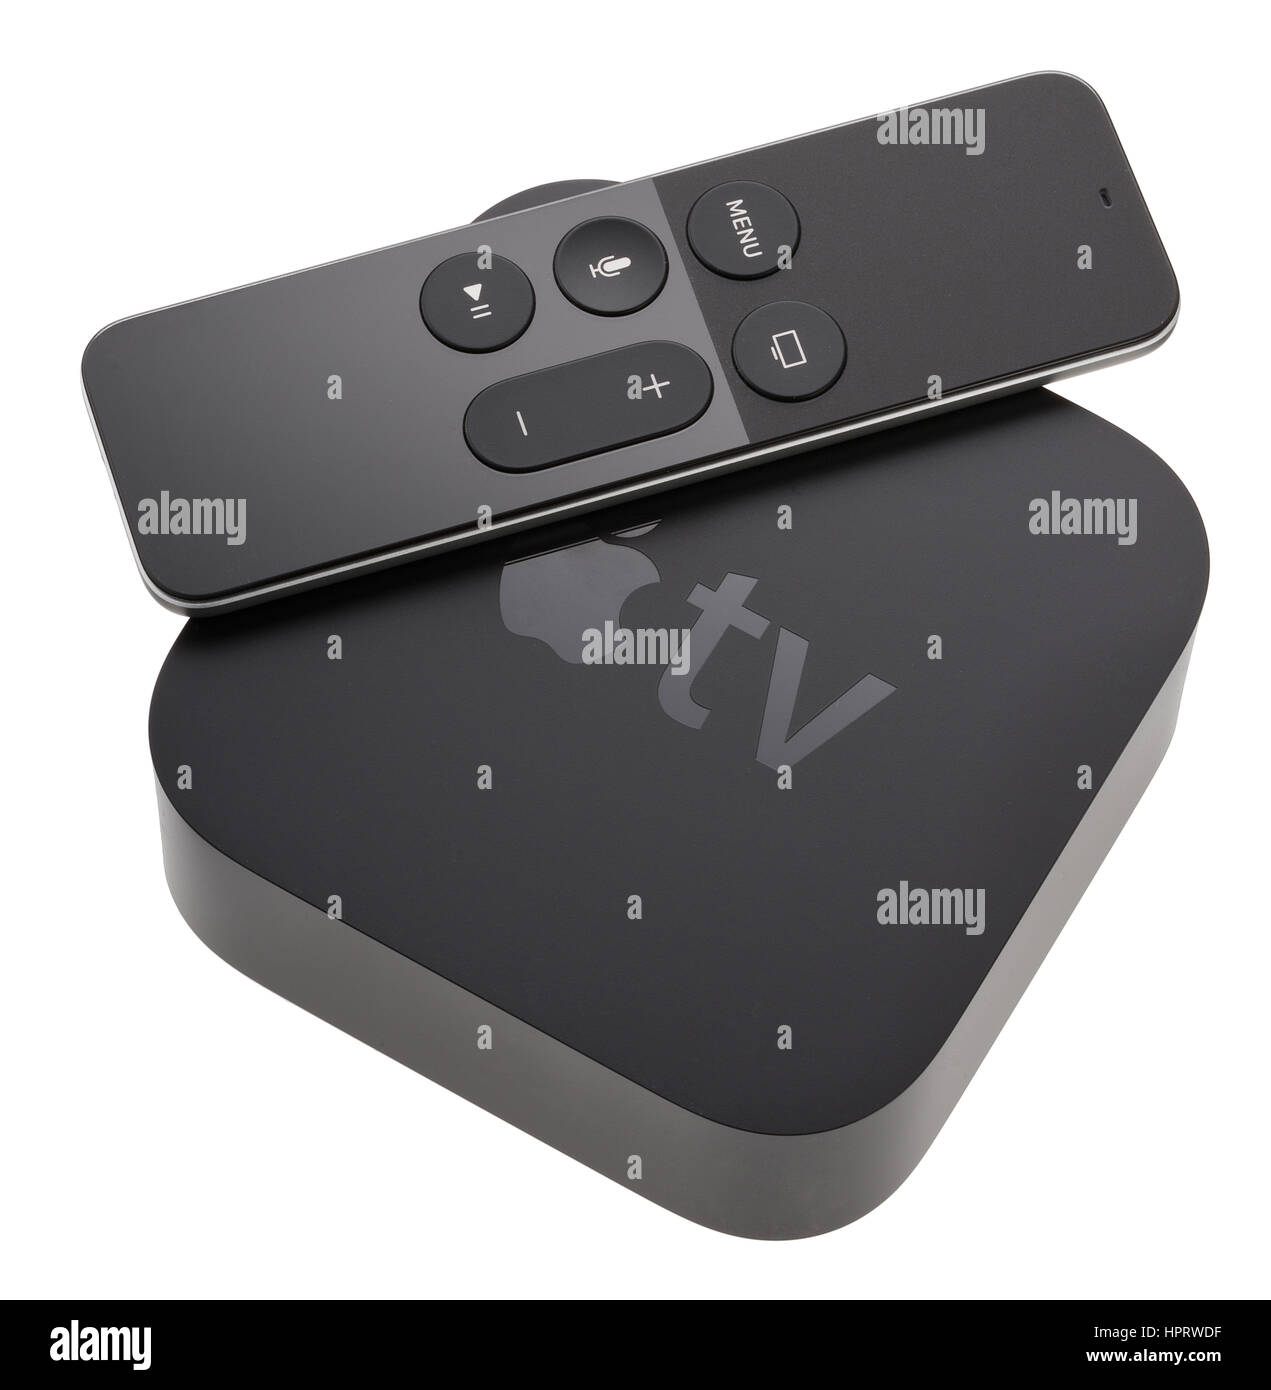 Apple TV  Siri remote control  Set top box that connects to web